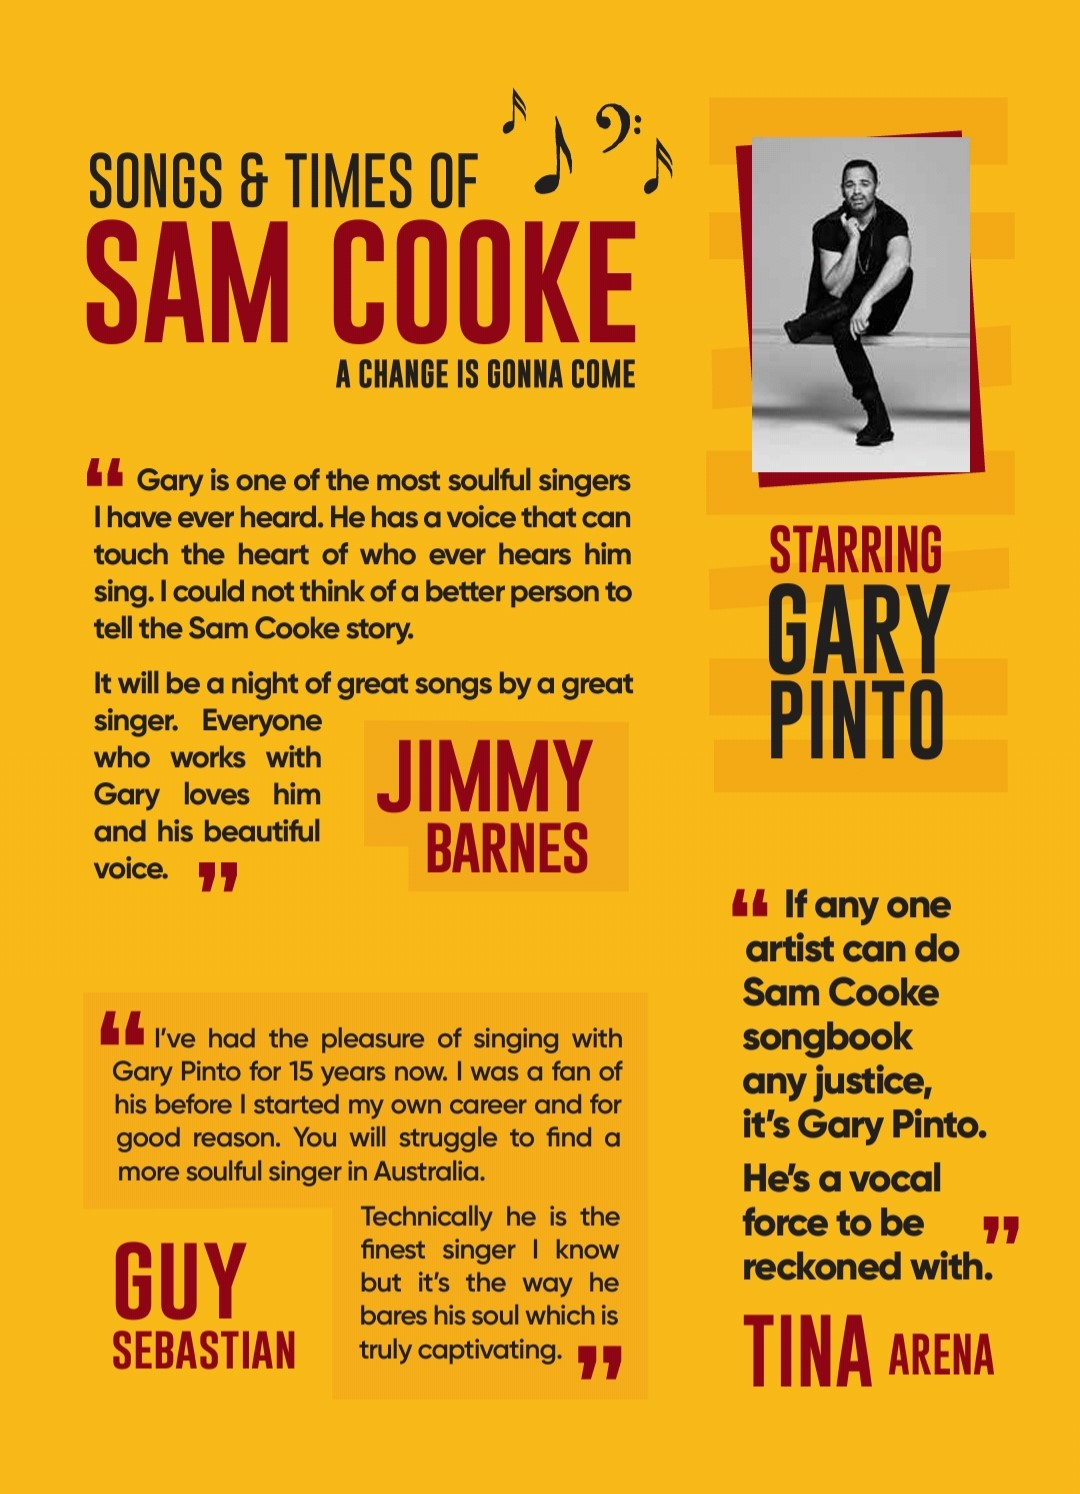 Songs & Times Of Sam Cooke – A Change Is Gonna Come | Hot Off The